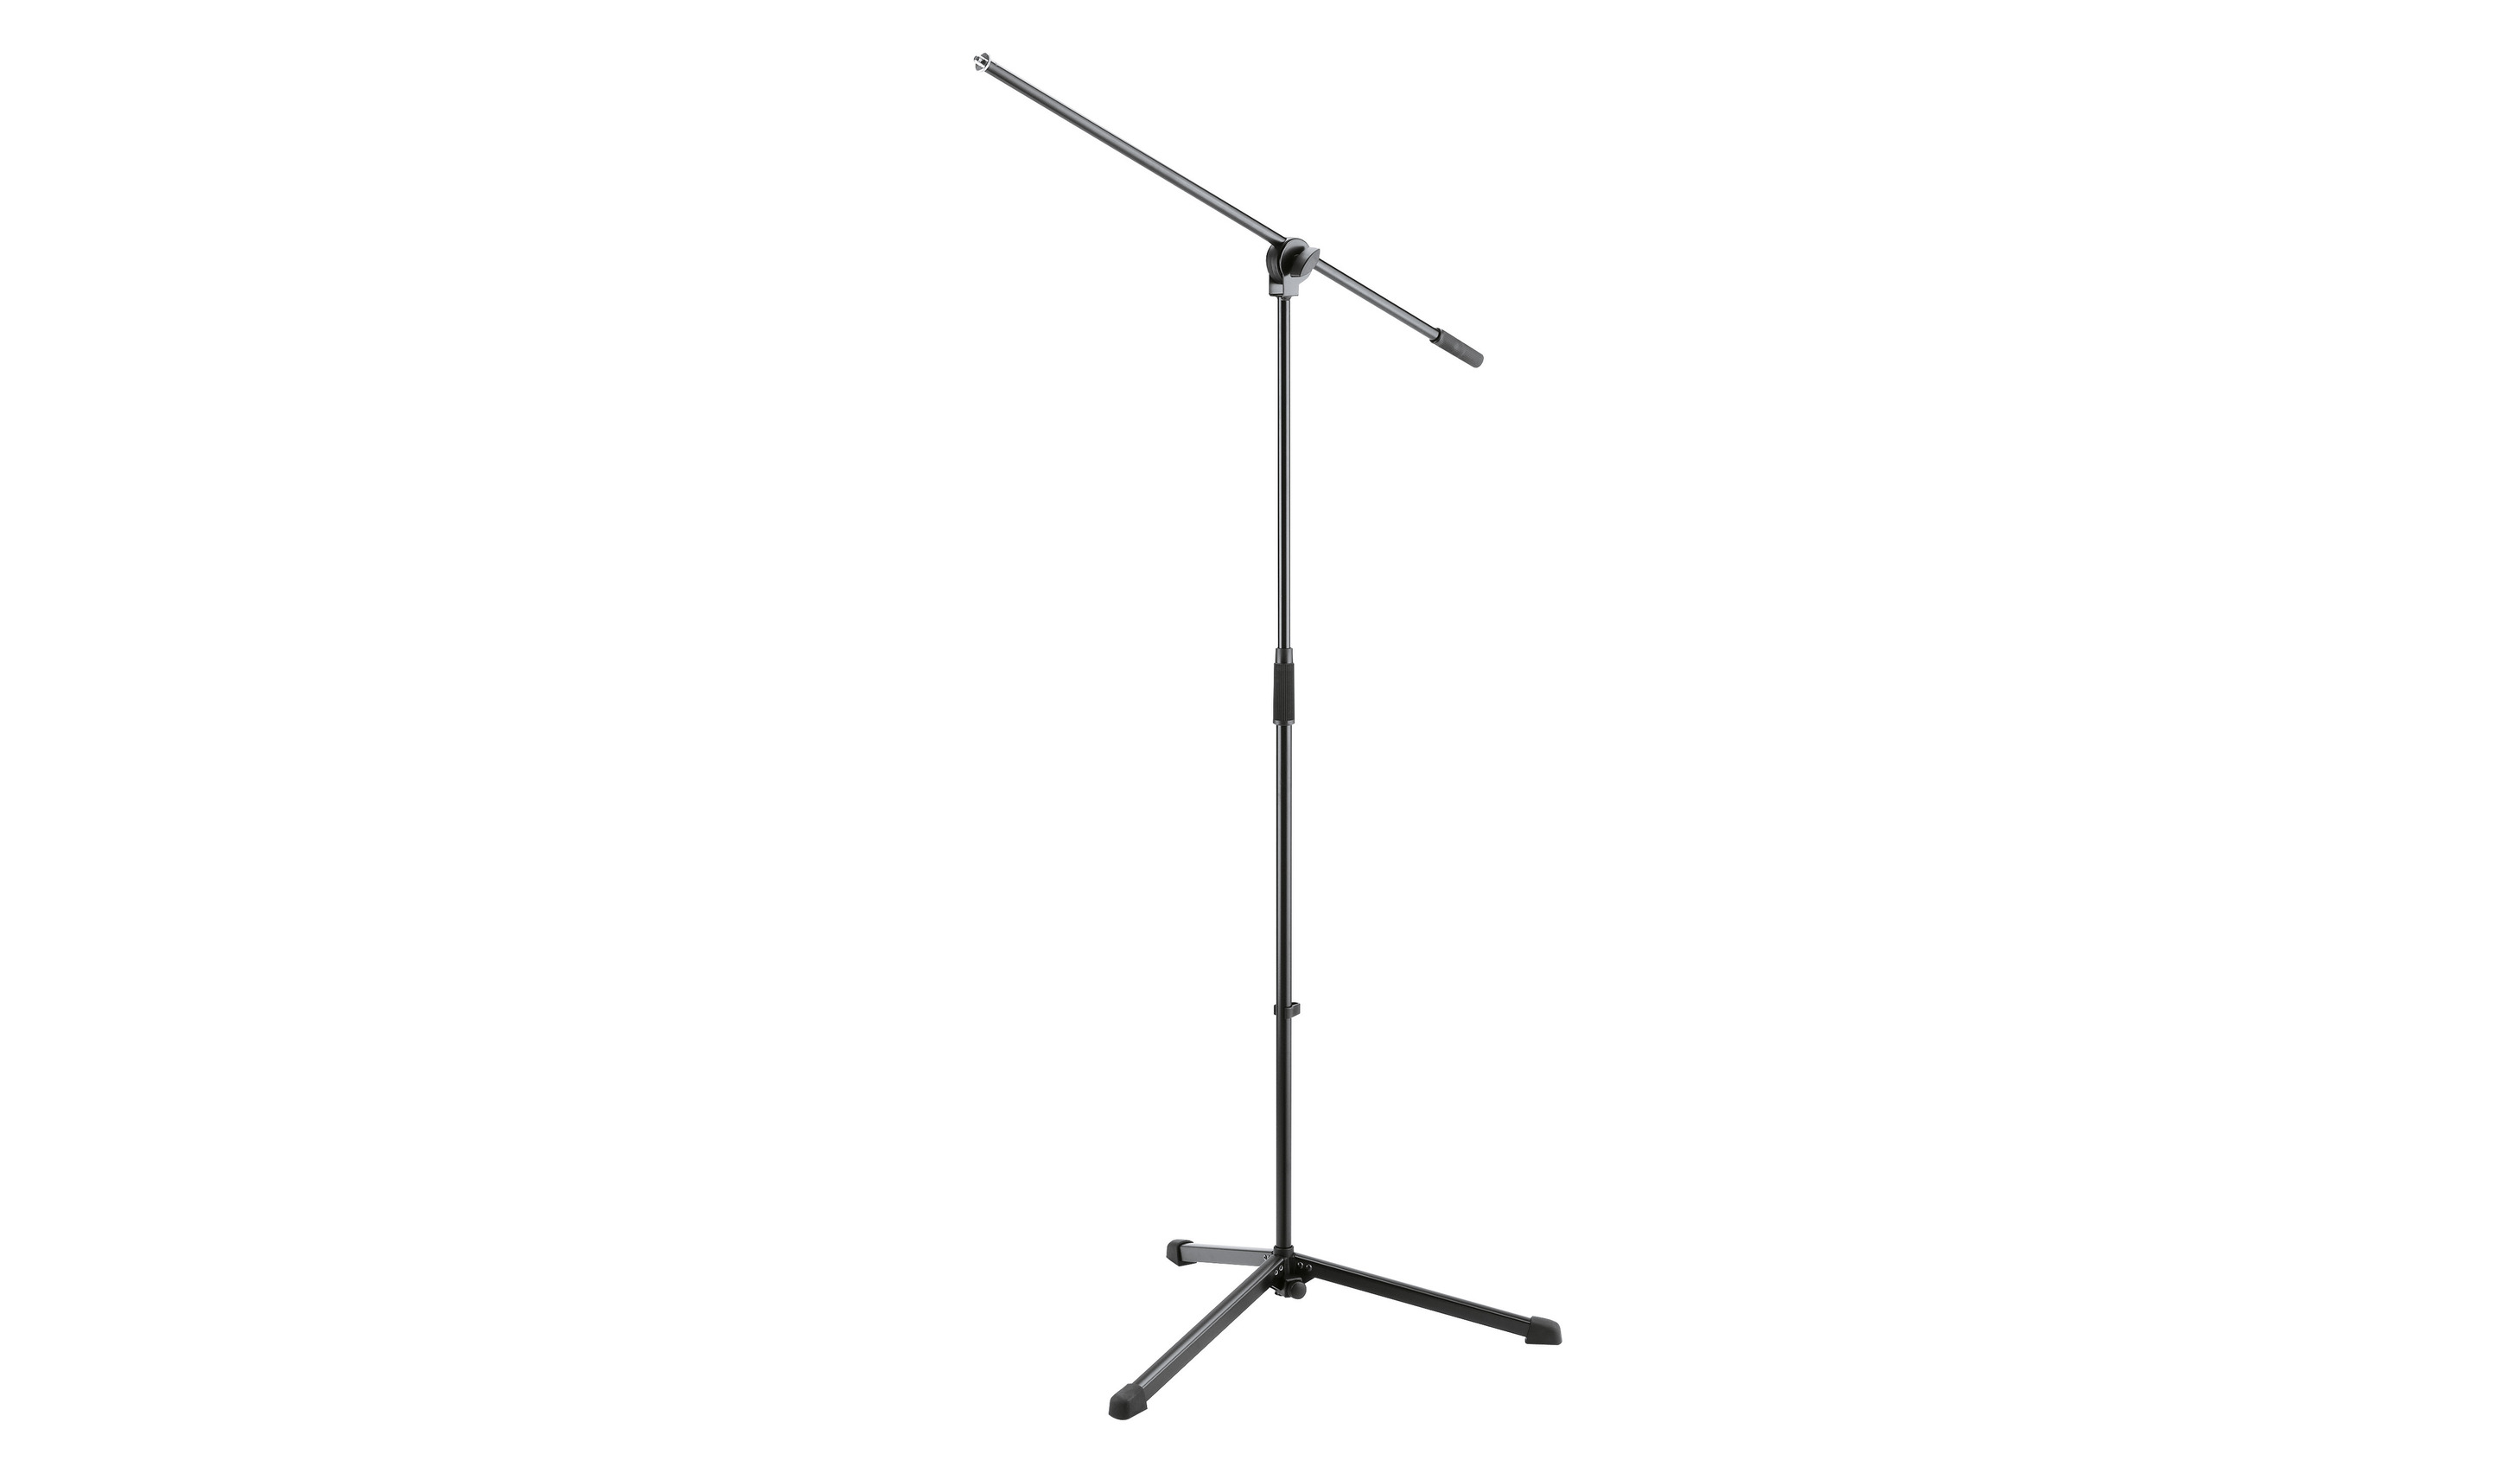 Microphone_stand_black_25400-300-5516f225a0104c09648808ee77b7b29840-productpage_super